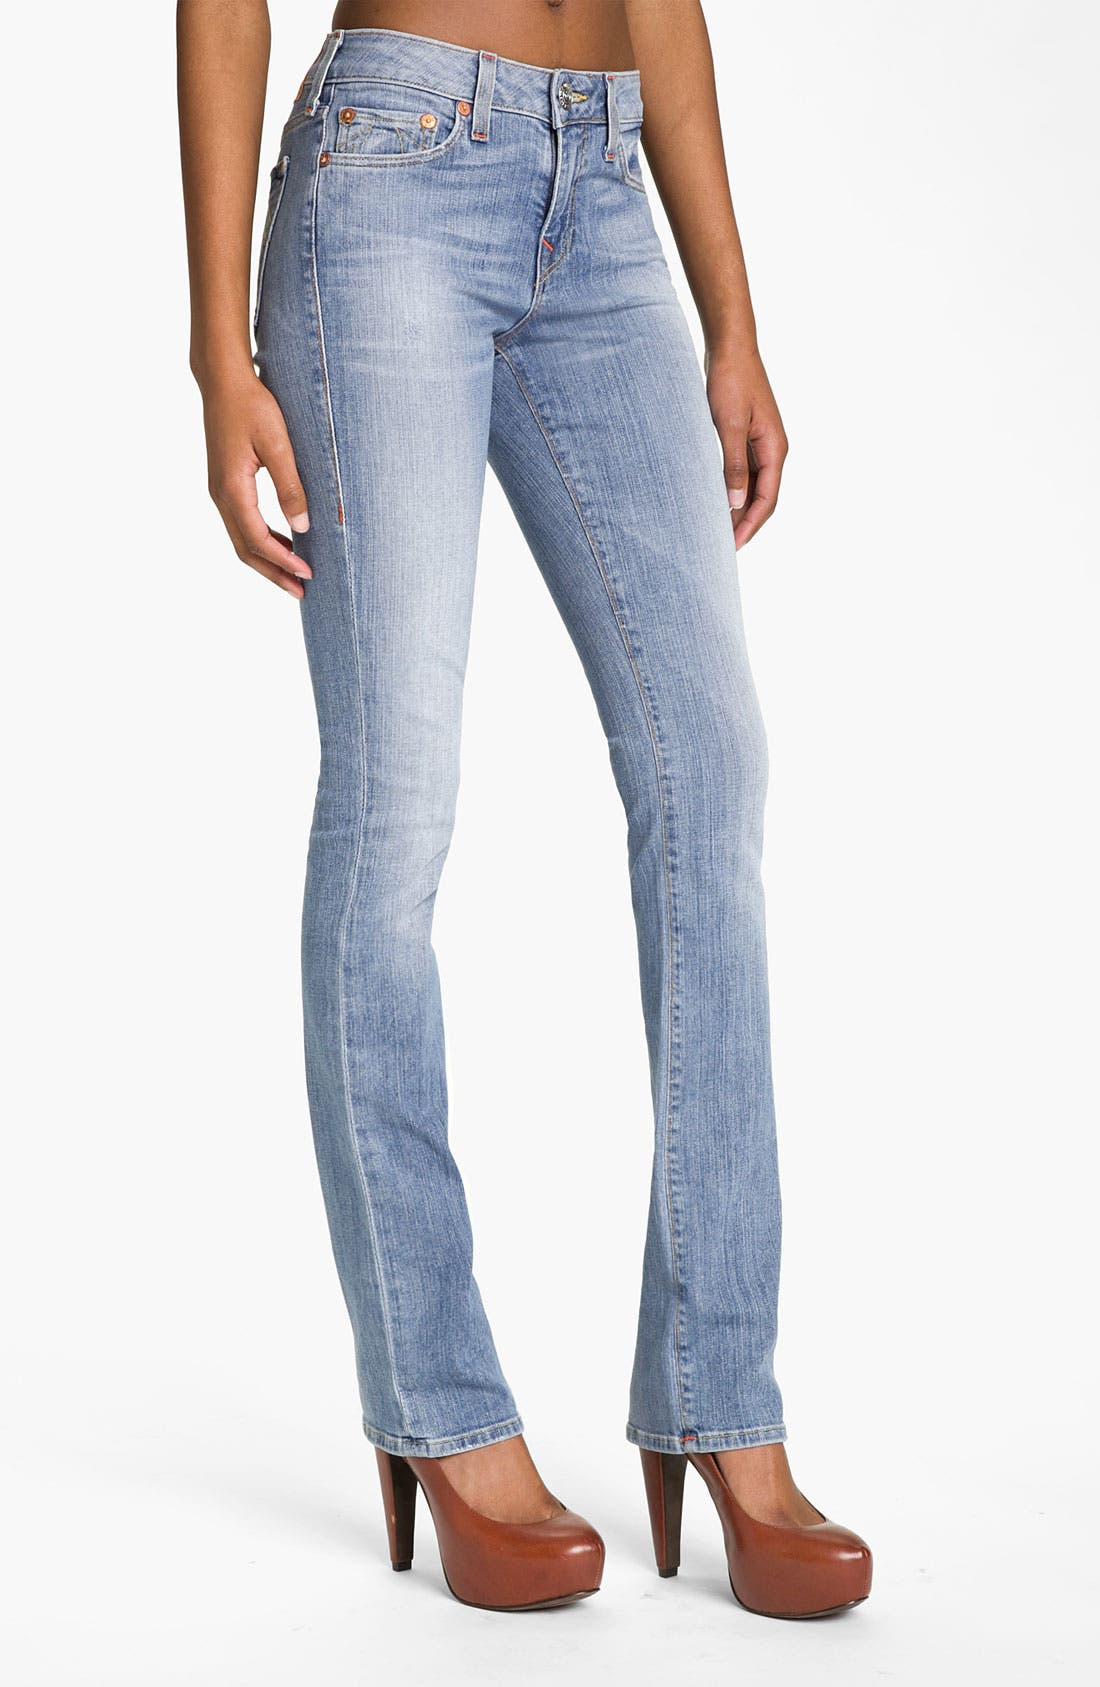 Alternate Image 1 Selected - True Religion Brand Jeans 'Stacey' Straight Leg Stretch Jeans (Drifter)